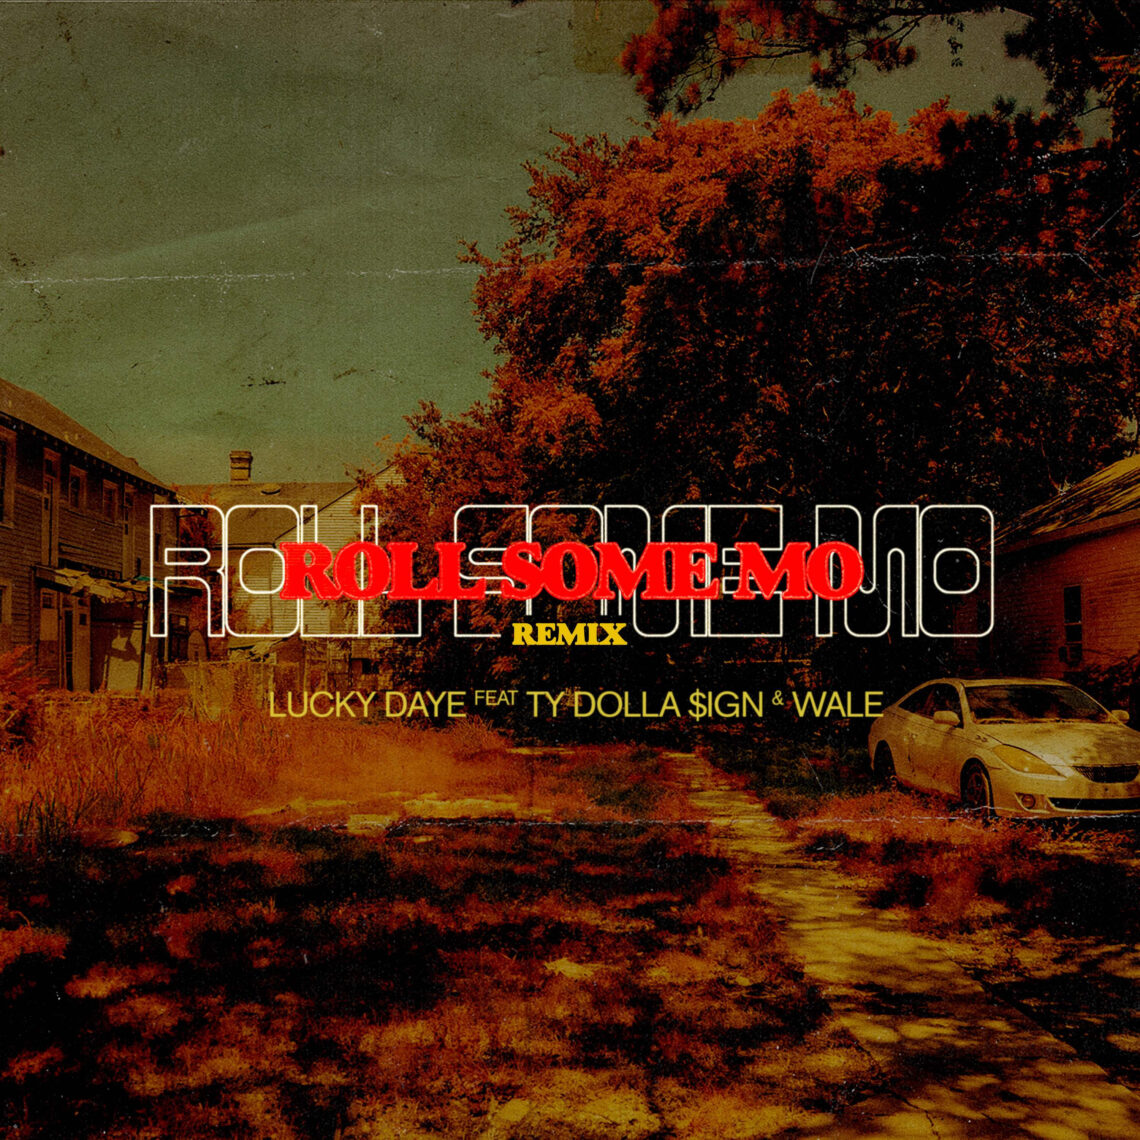 lucky daye releases roll some mo remix featuring ty dolla ign and wale rated r b featuring ty dolla ign and wale